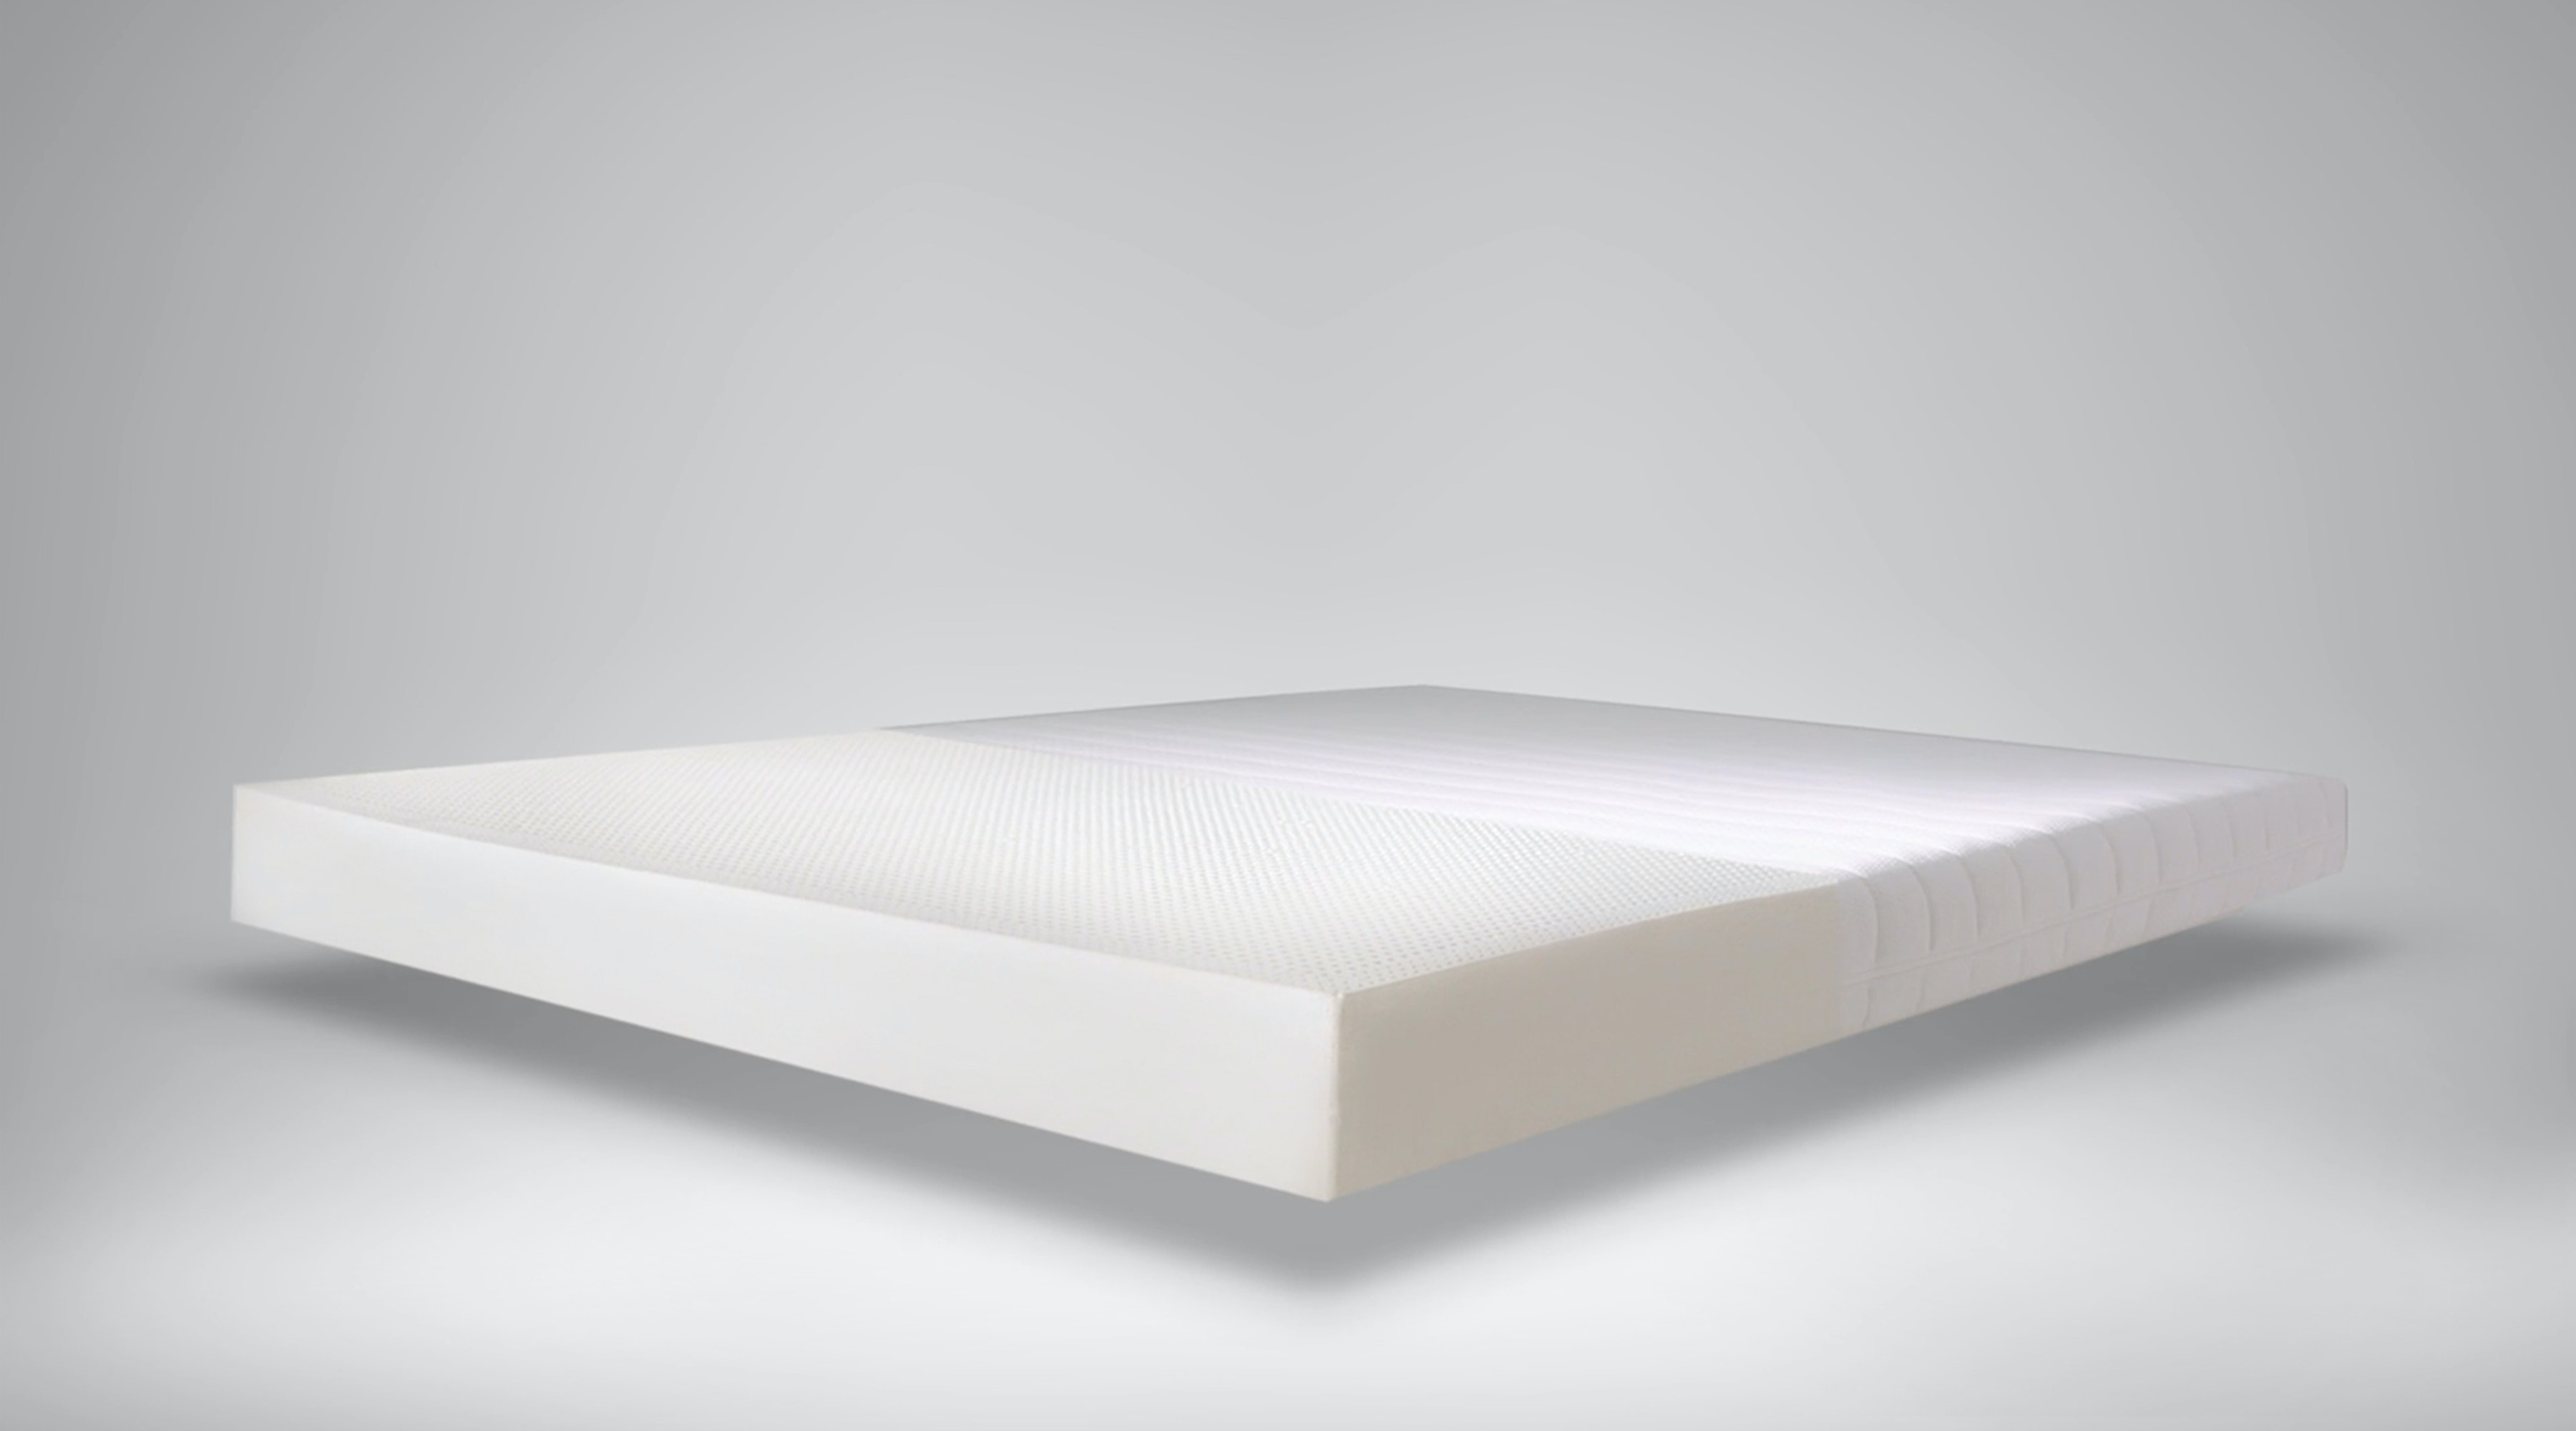 Advantages Of Buying High-Quality Mattresses